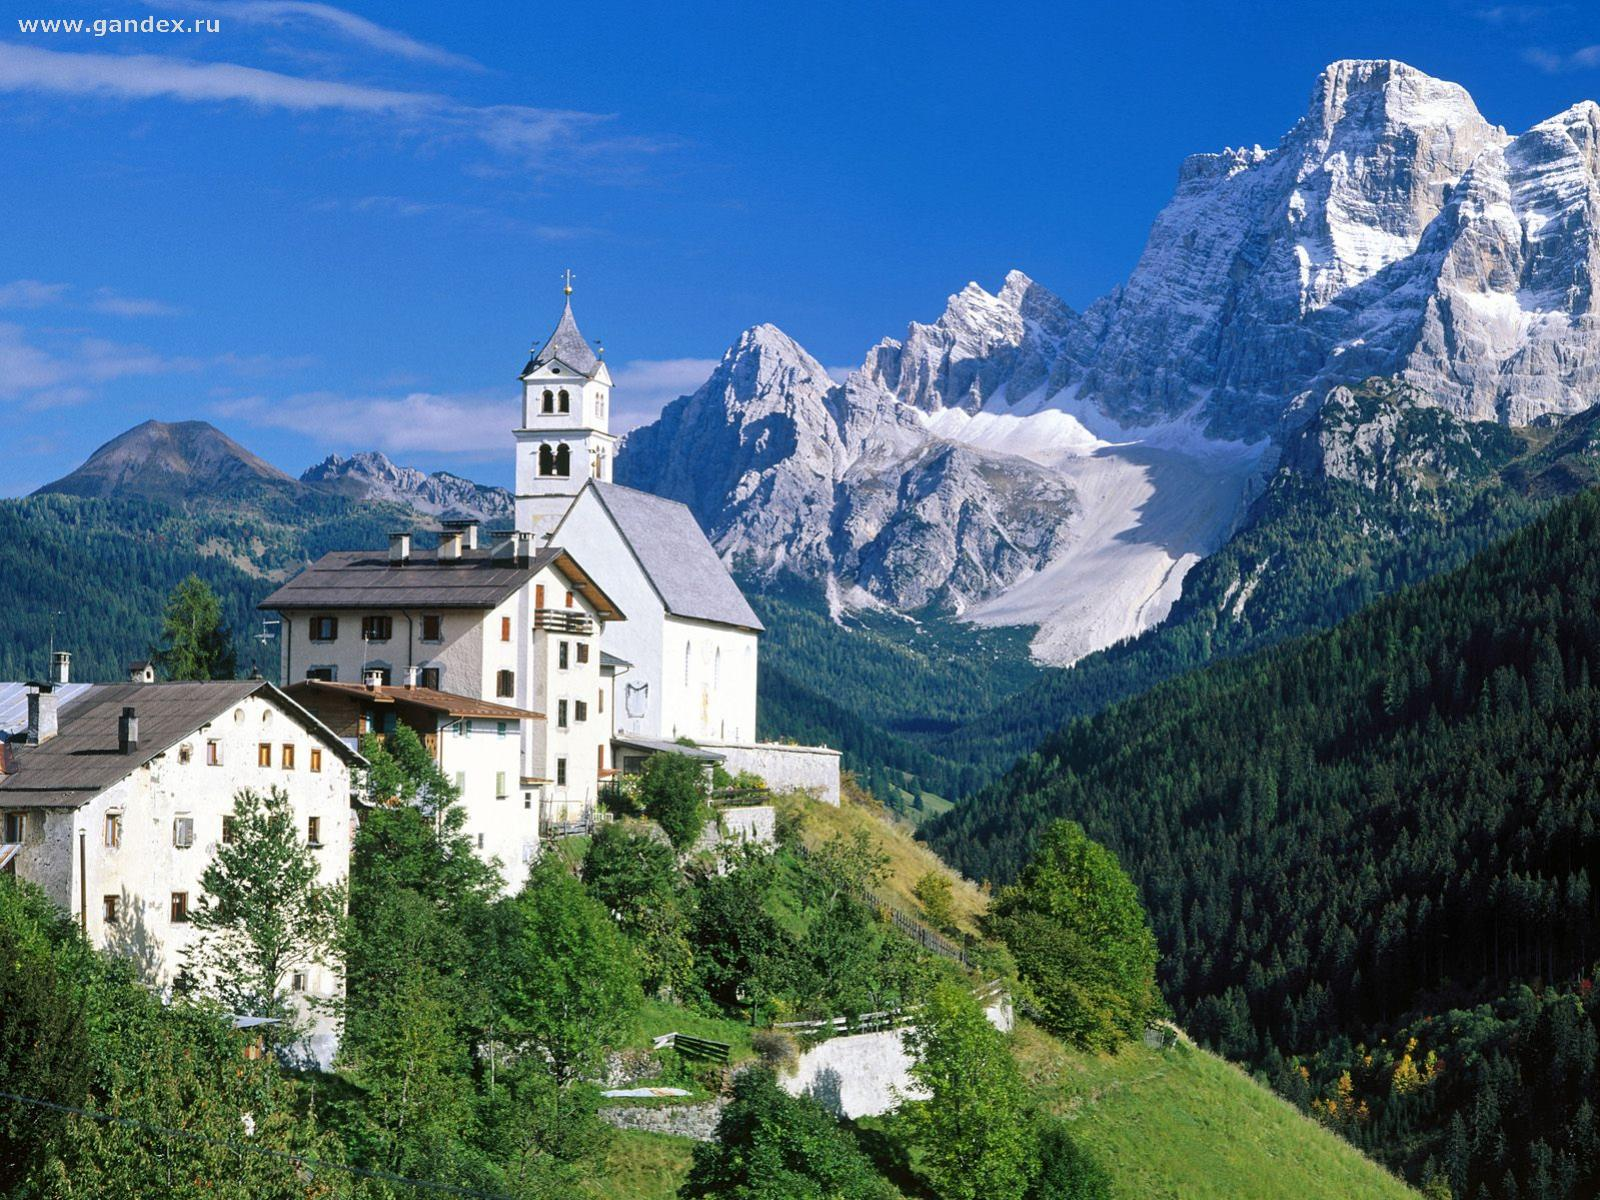 Italy, the Alps mountains - Wallpaper